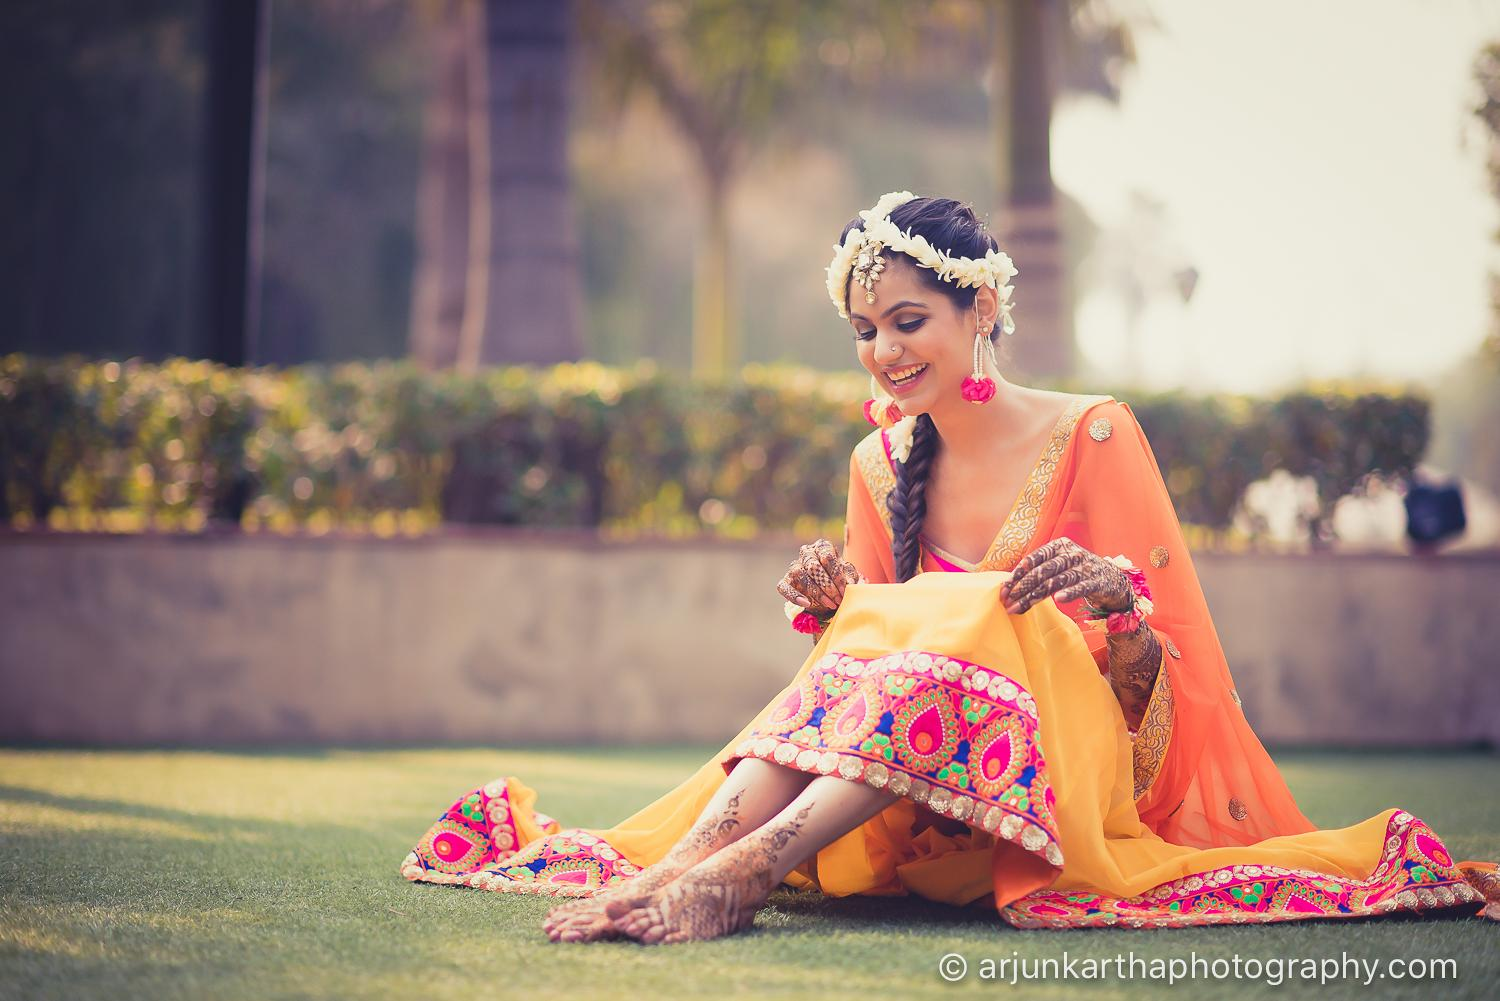 style guide indian mehndi outfit ideas amp trending mehndi